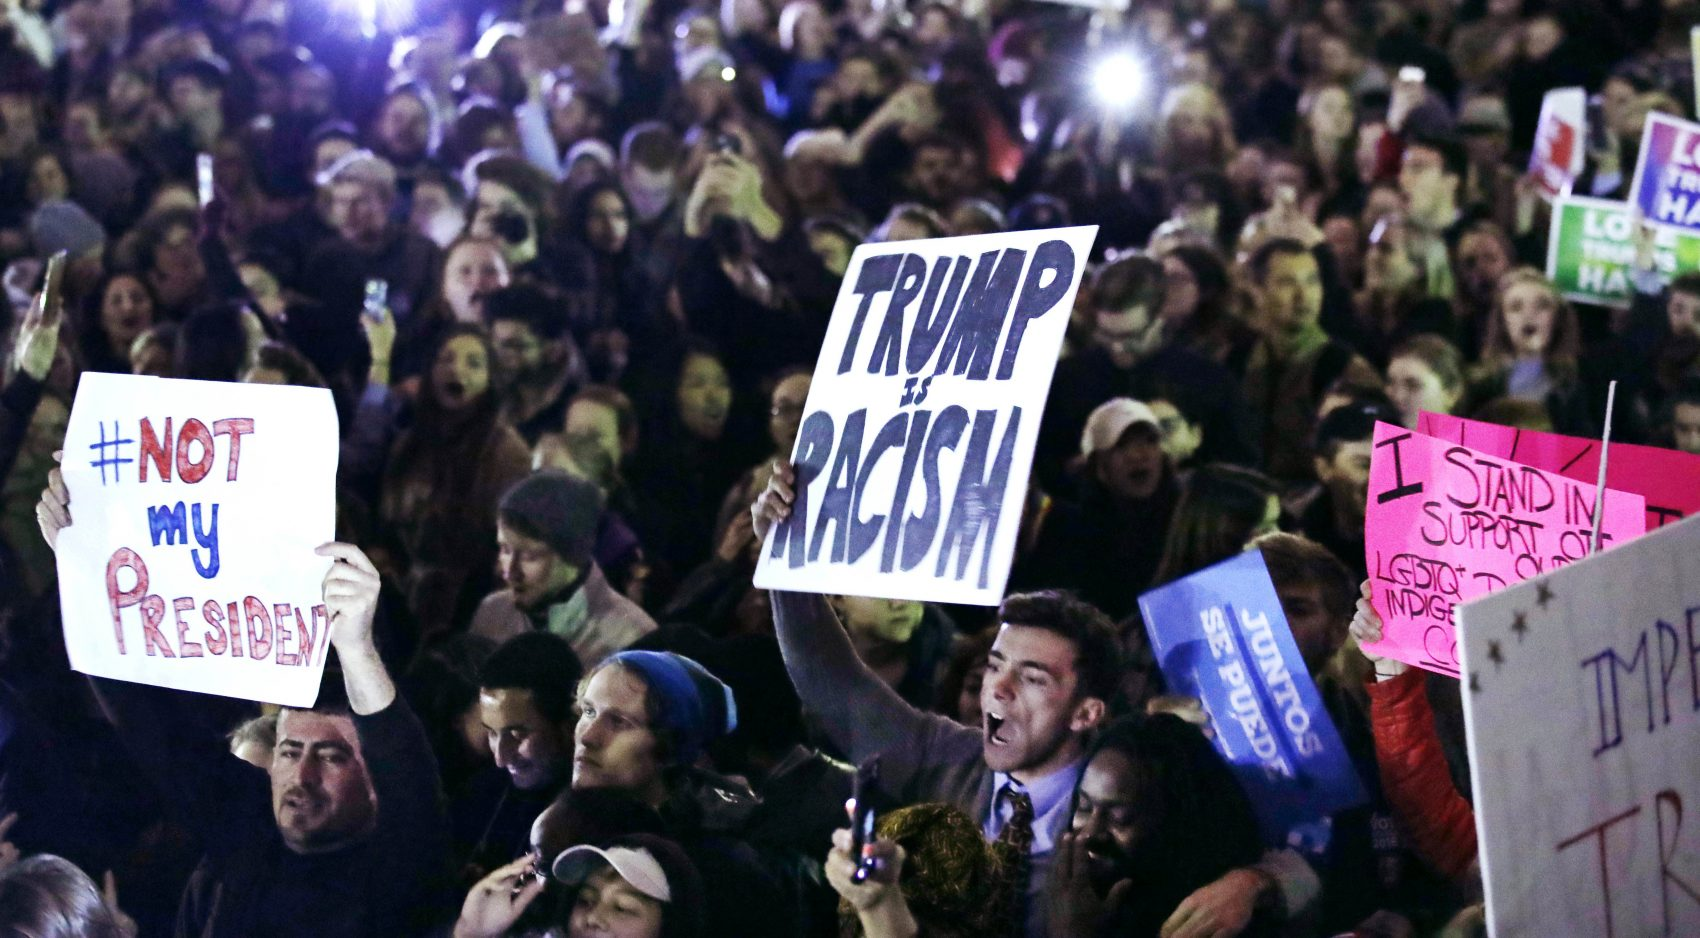 Hundreds protest in opposition of Donald Trump's presidential election victory on Boston Common  Wednesday evening. (Charles Krupa/AP)